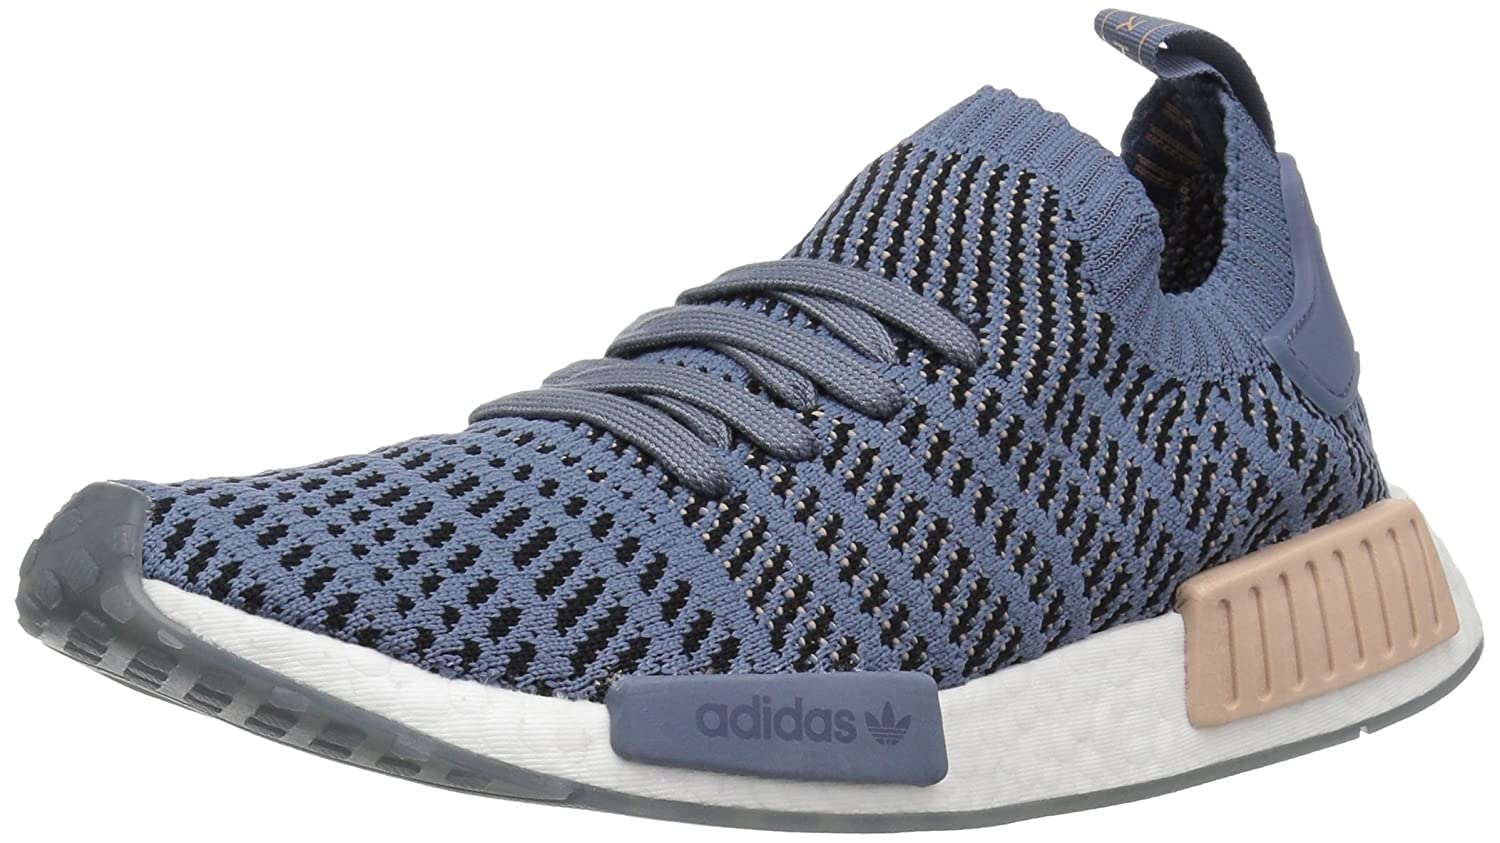 adidas Originals Women's NMD_r1 Stlt Pk B079Y8K8NS 9.5 B(M) US|Raw Steel/Ash Pearl/White